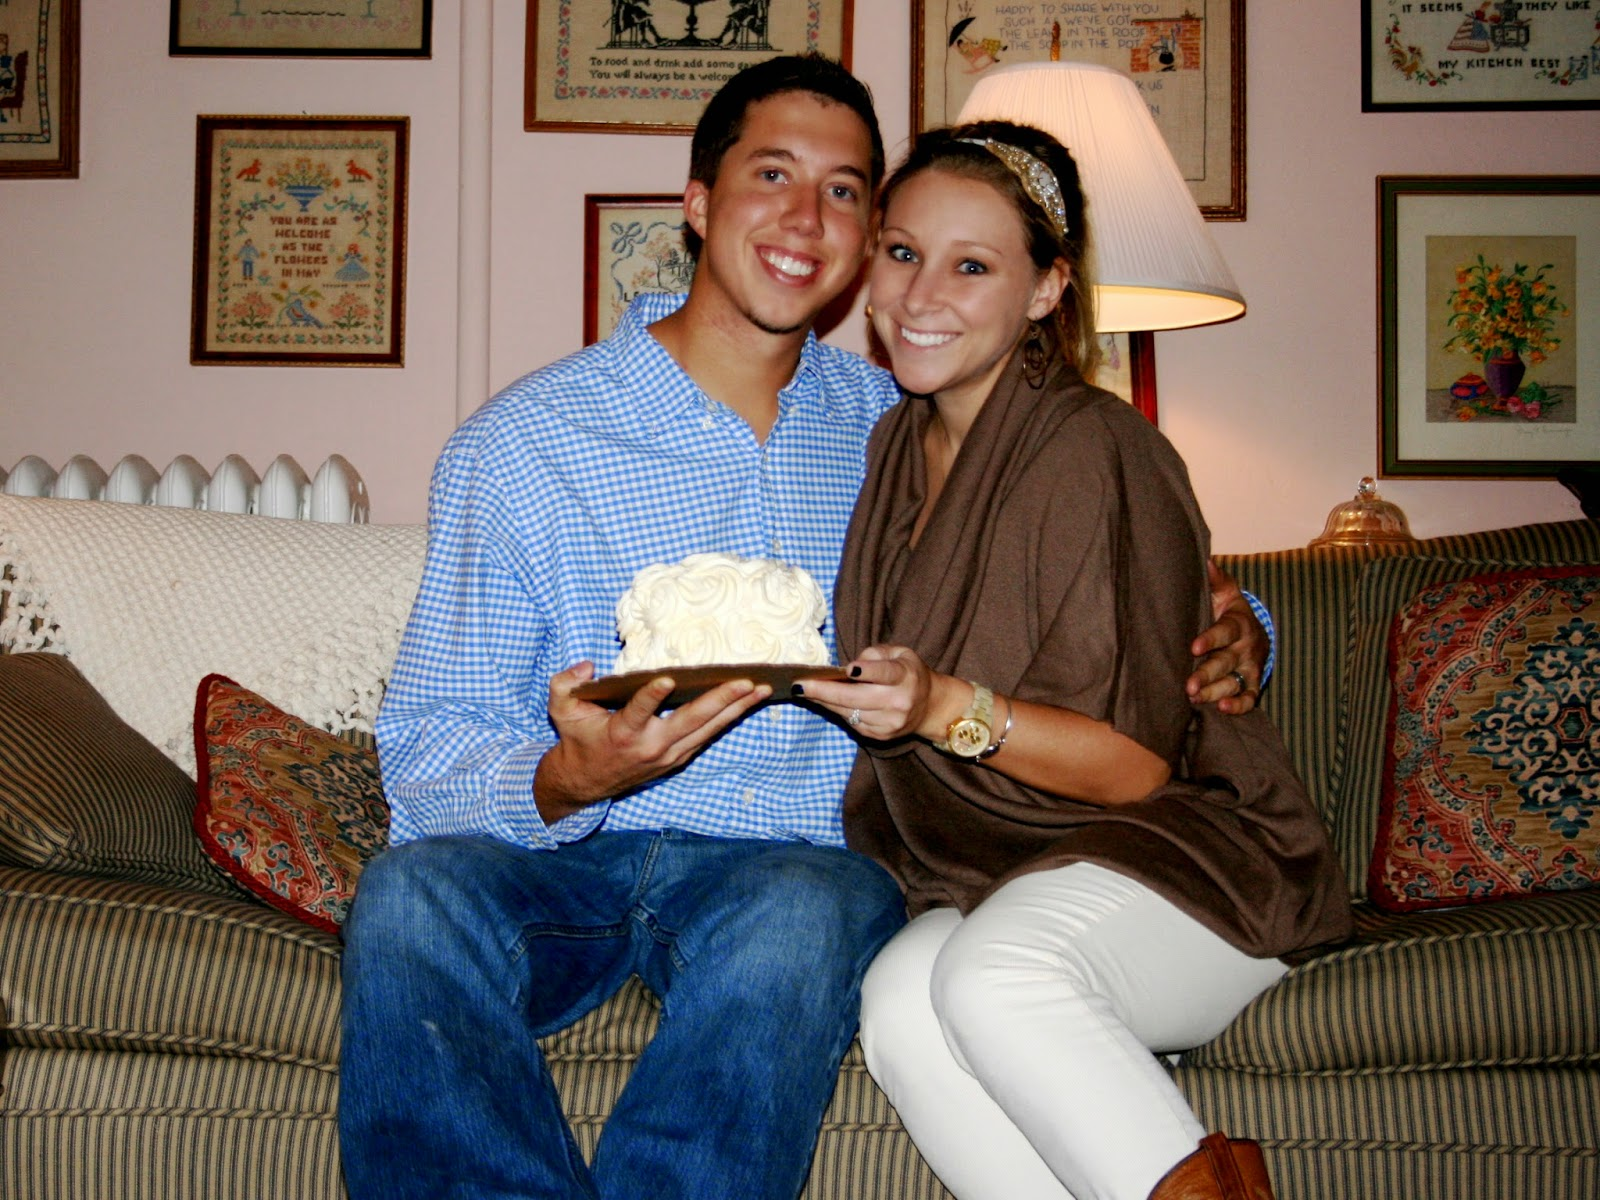 Anniversary Cake - Just Cupcakes - Blog With The Browns